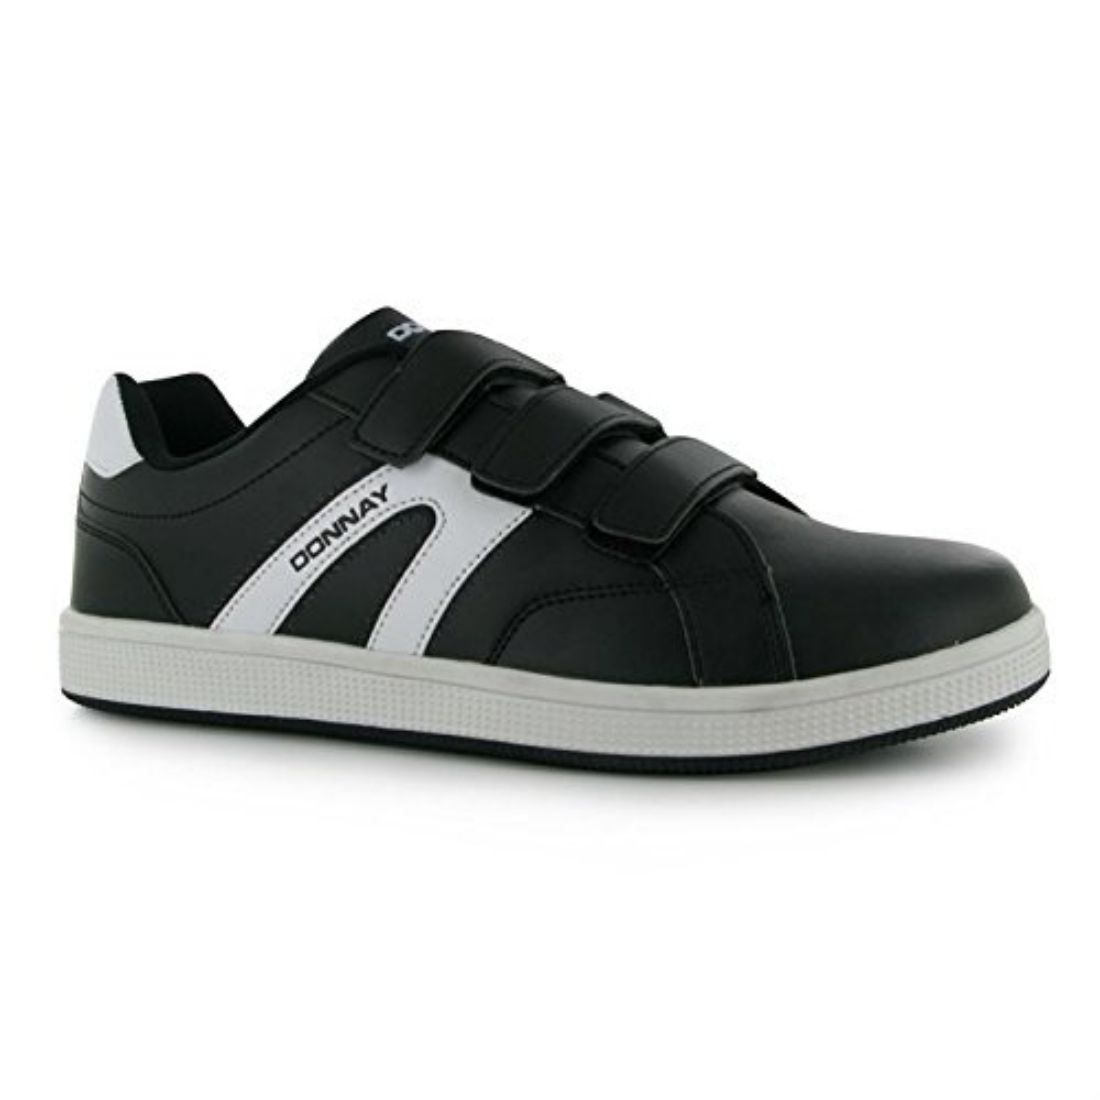 donnay mens west velcro padded tennis shoes sports